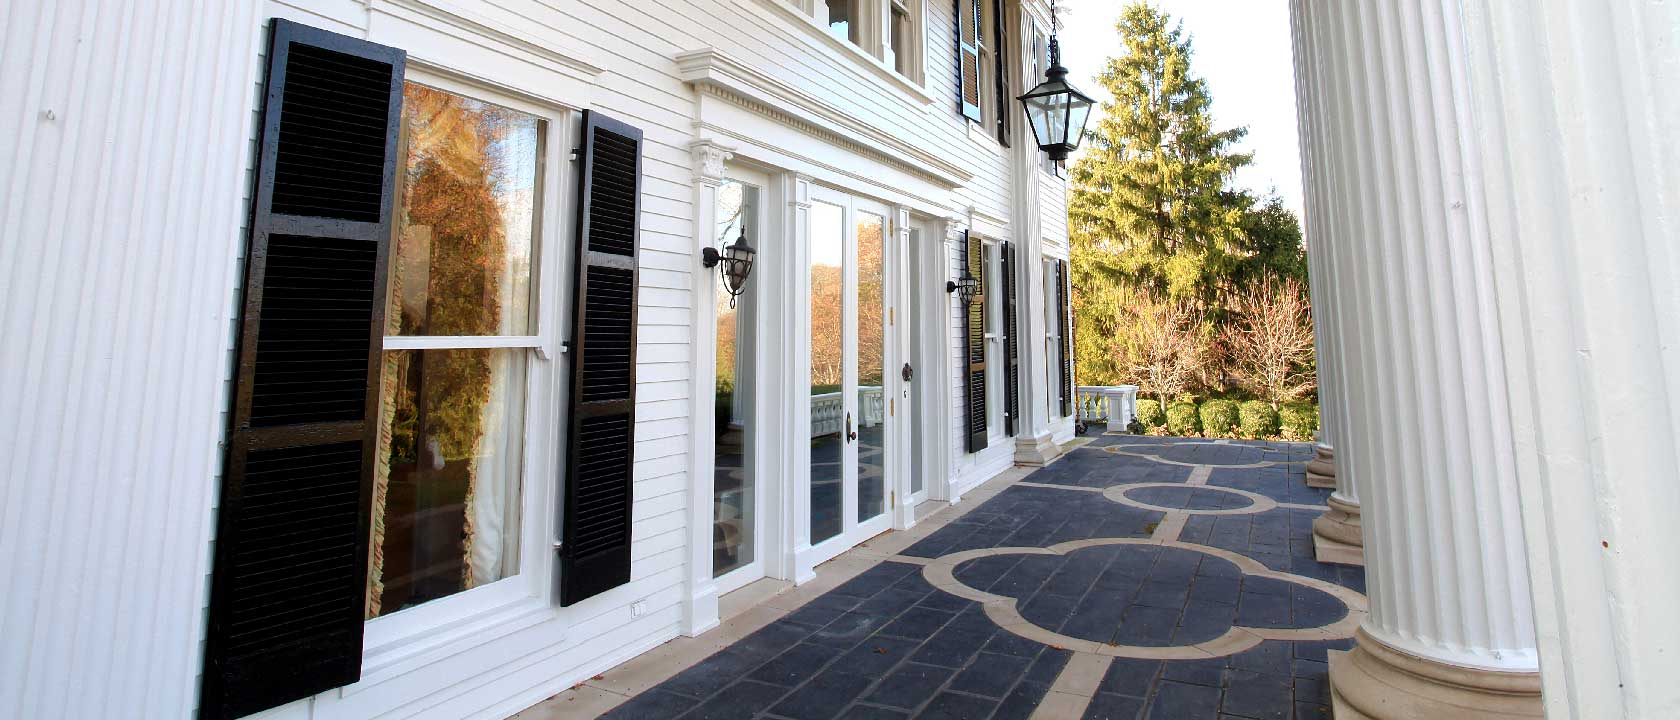 porch view example Steilberg residential exterior painting - white greek revival house